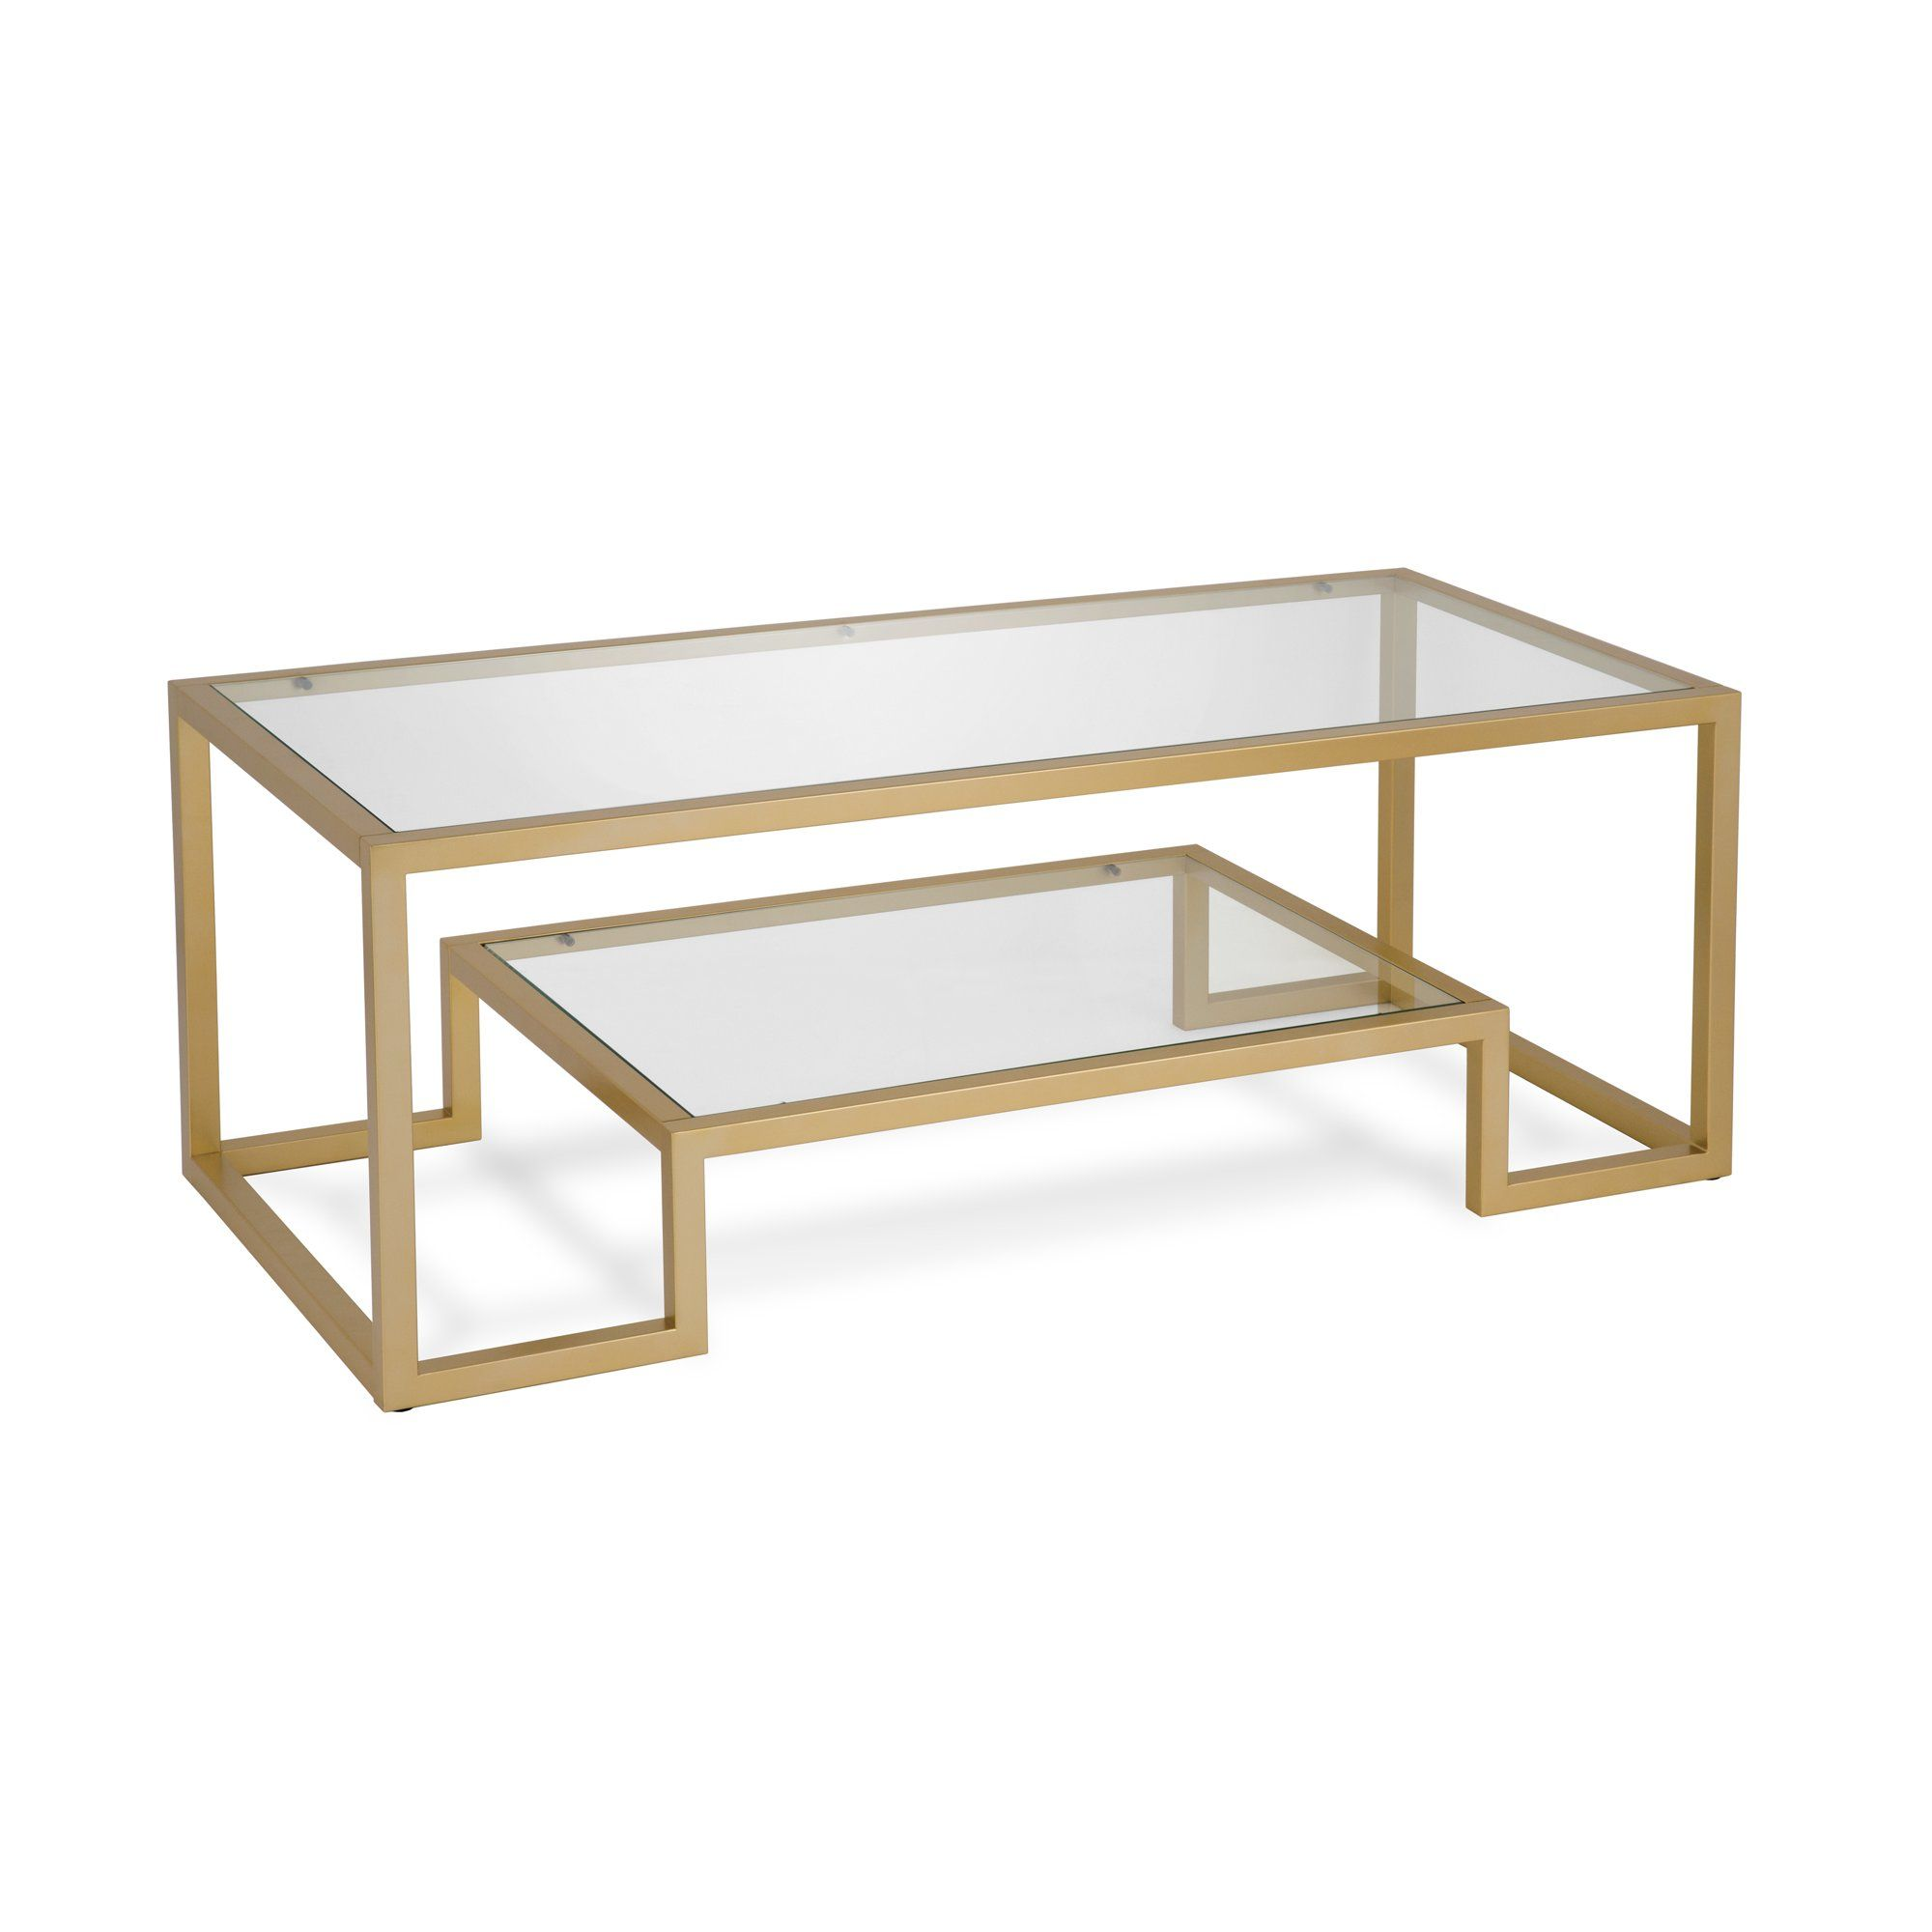 Evelyn Zoe Contemporary Coffee Table With Glass Top And Shelf Walmart Com In 2021 Gold Glass Coffee Table Geometric Coffee Table Coffee Table [ 2000 x 2000 Pixel ]